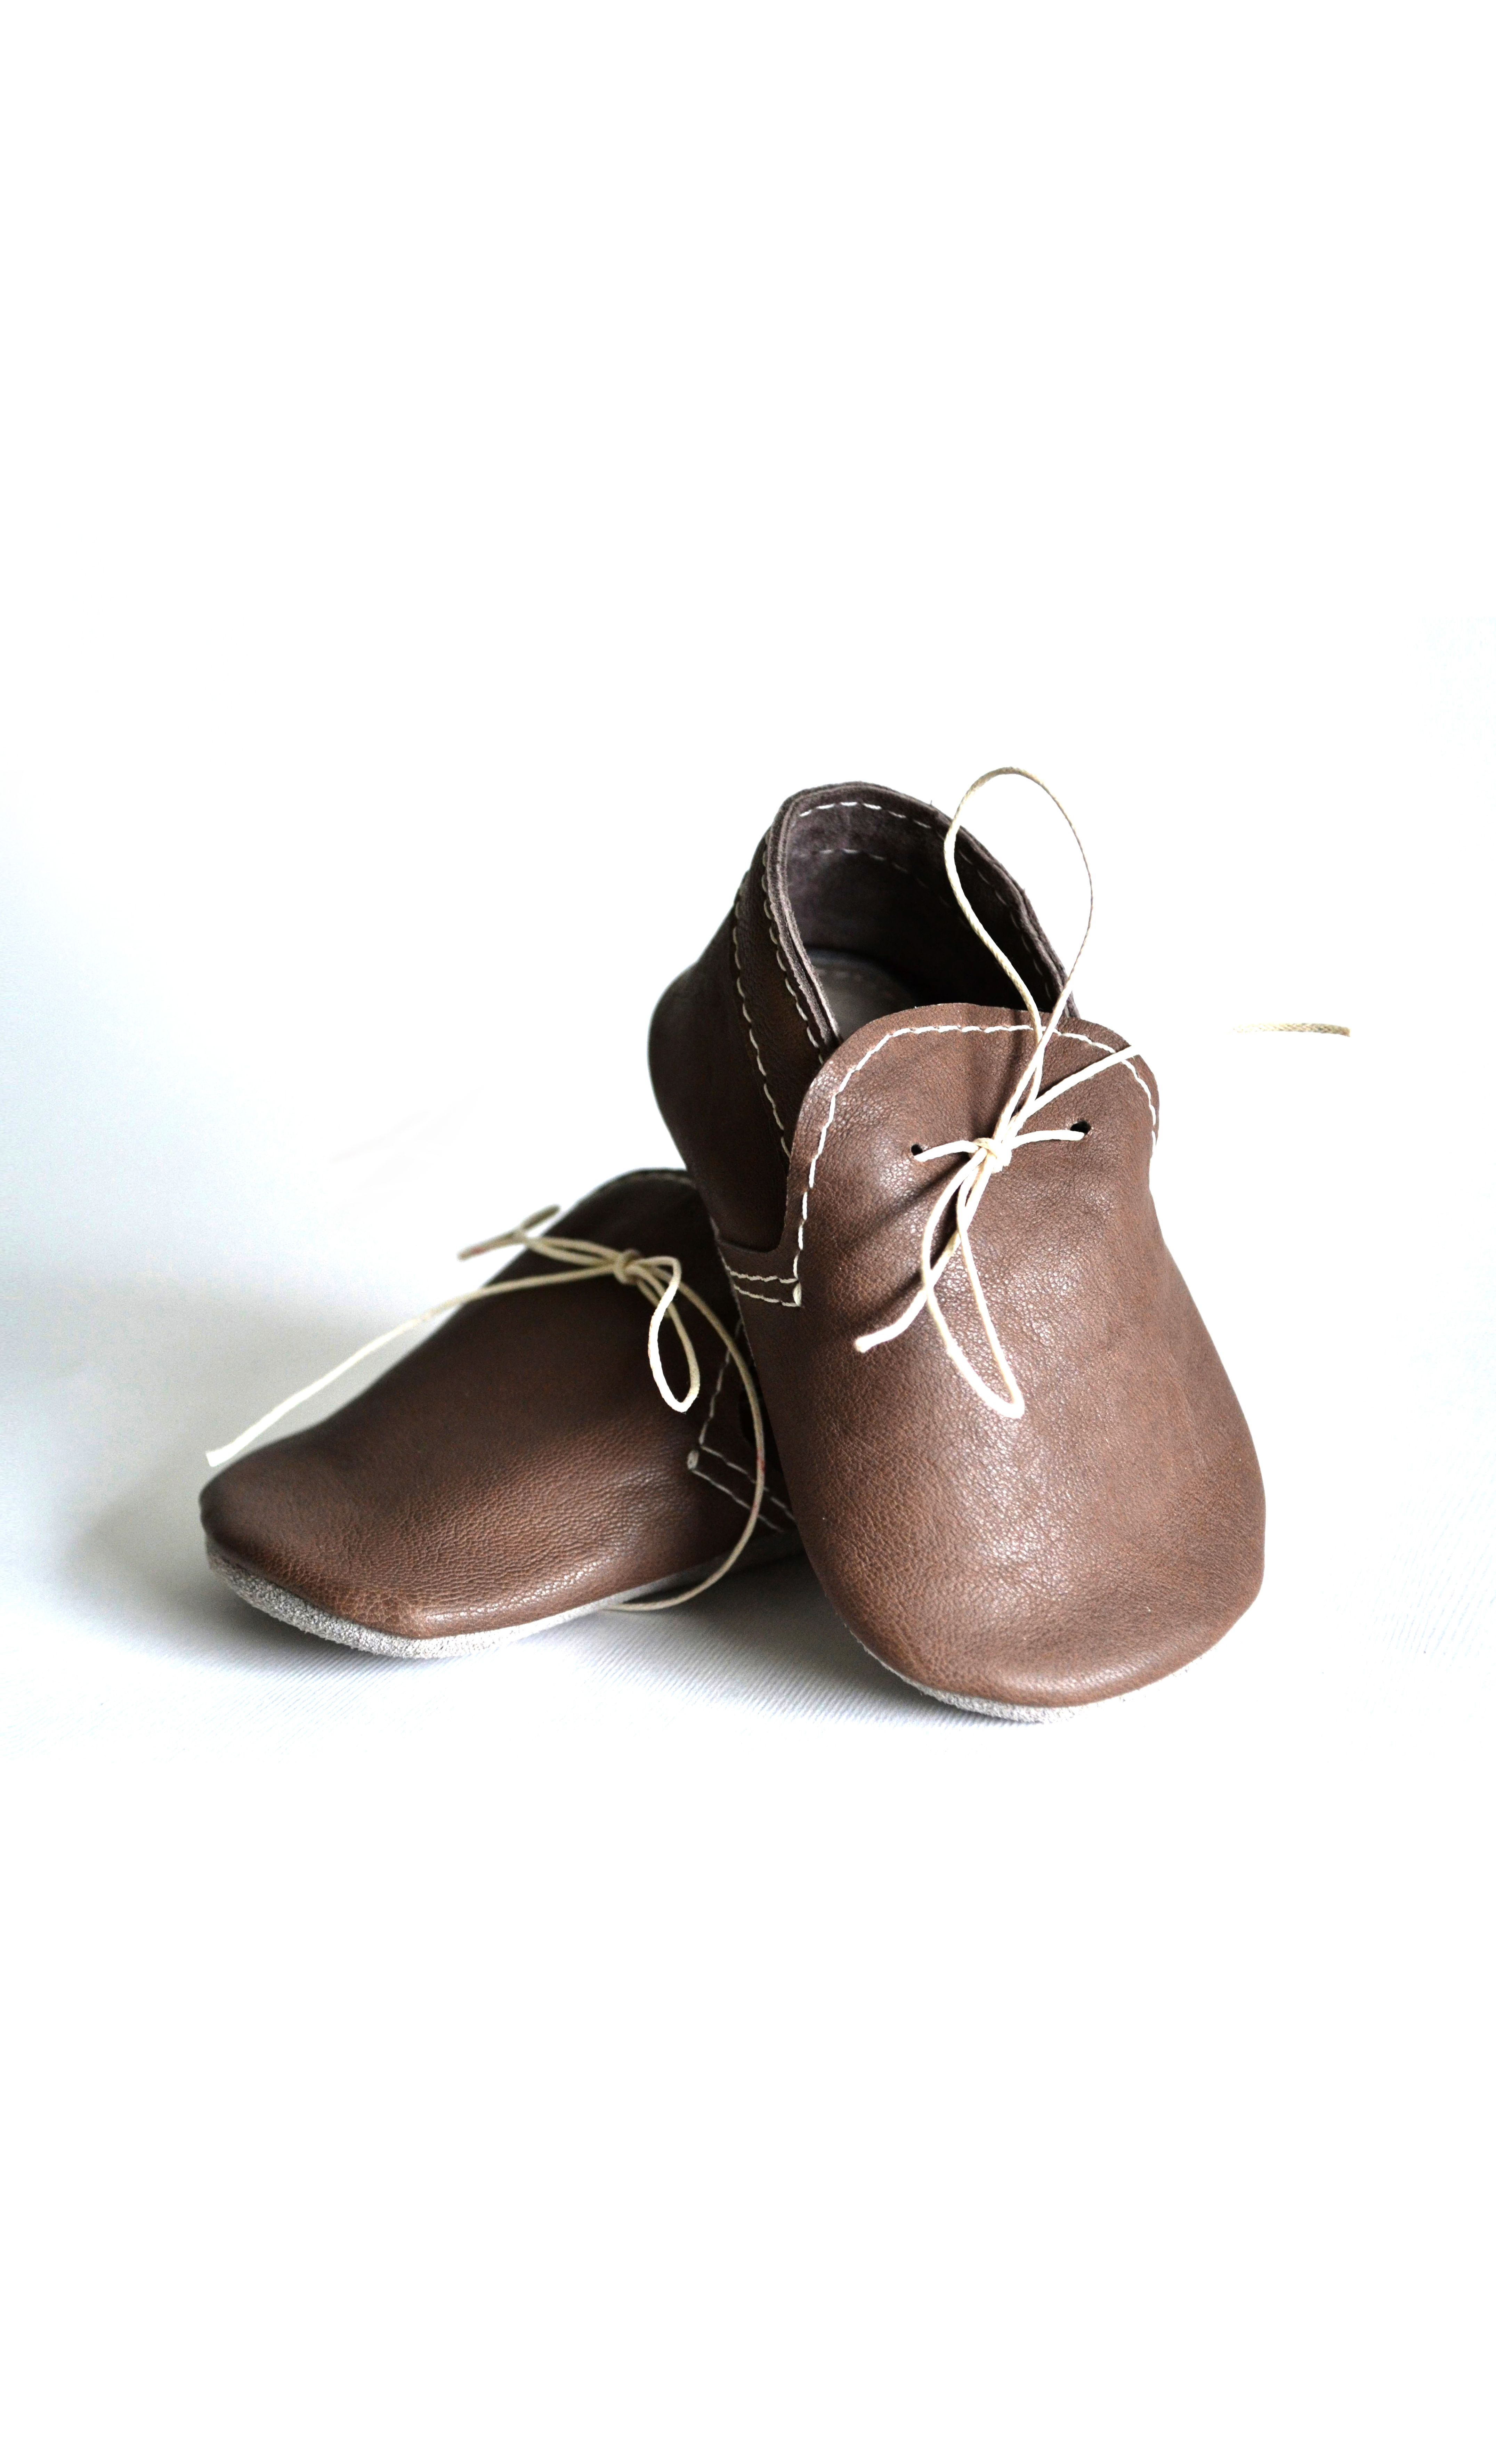 Baby boy moccasins Brown leather baby shoes Baby boy loafers